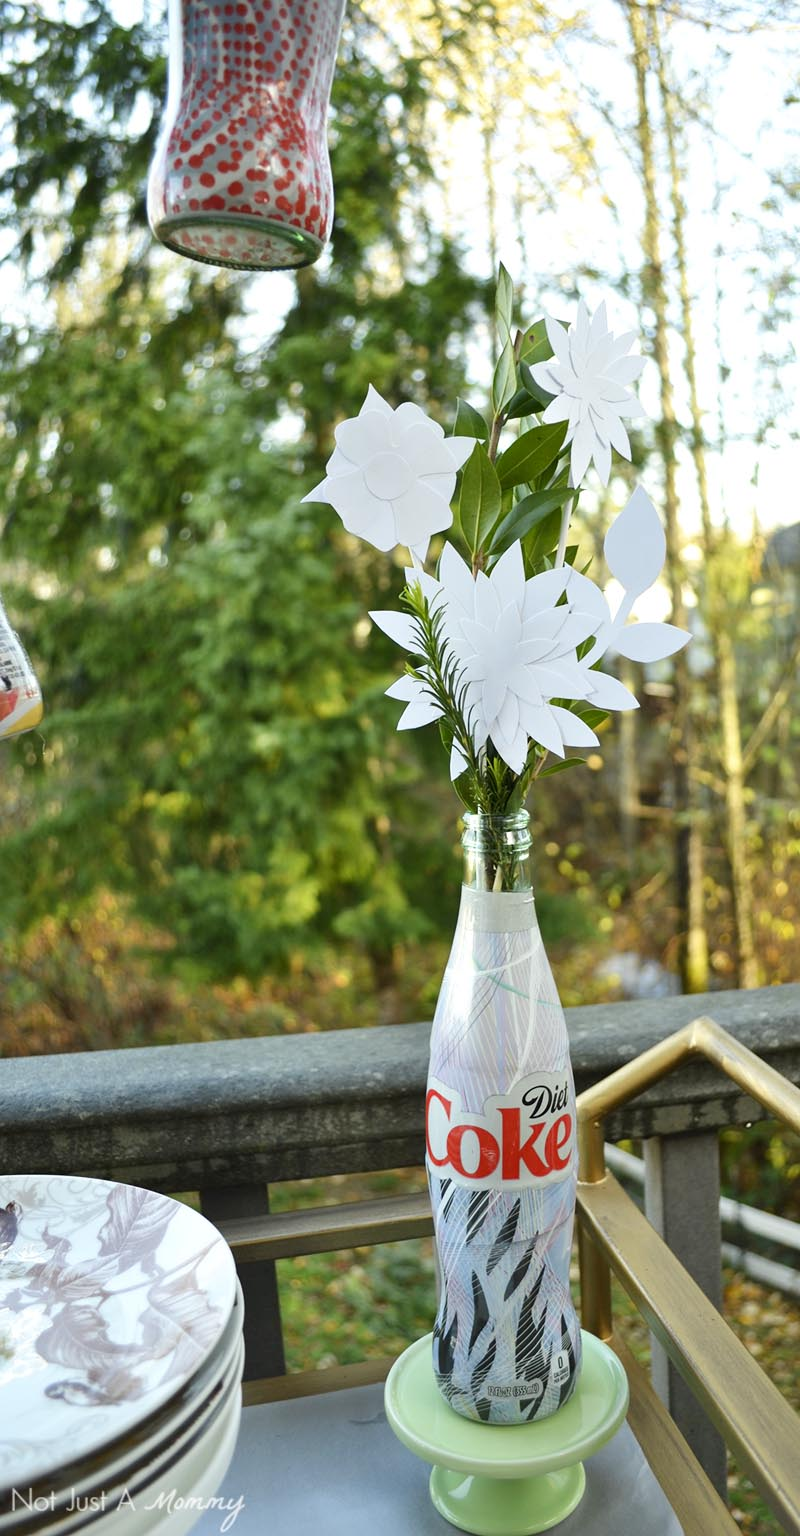 Handcut paper flyers in a upcycled Diet Coke vase